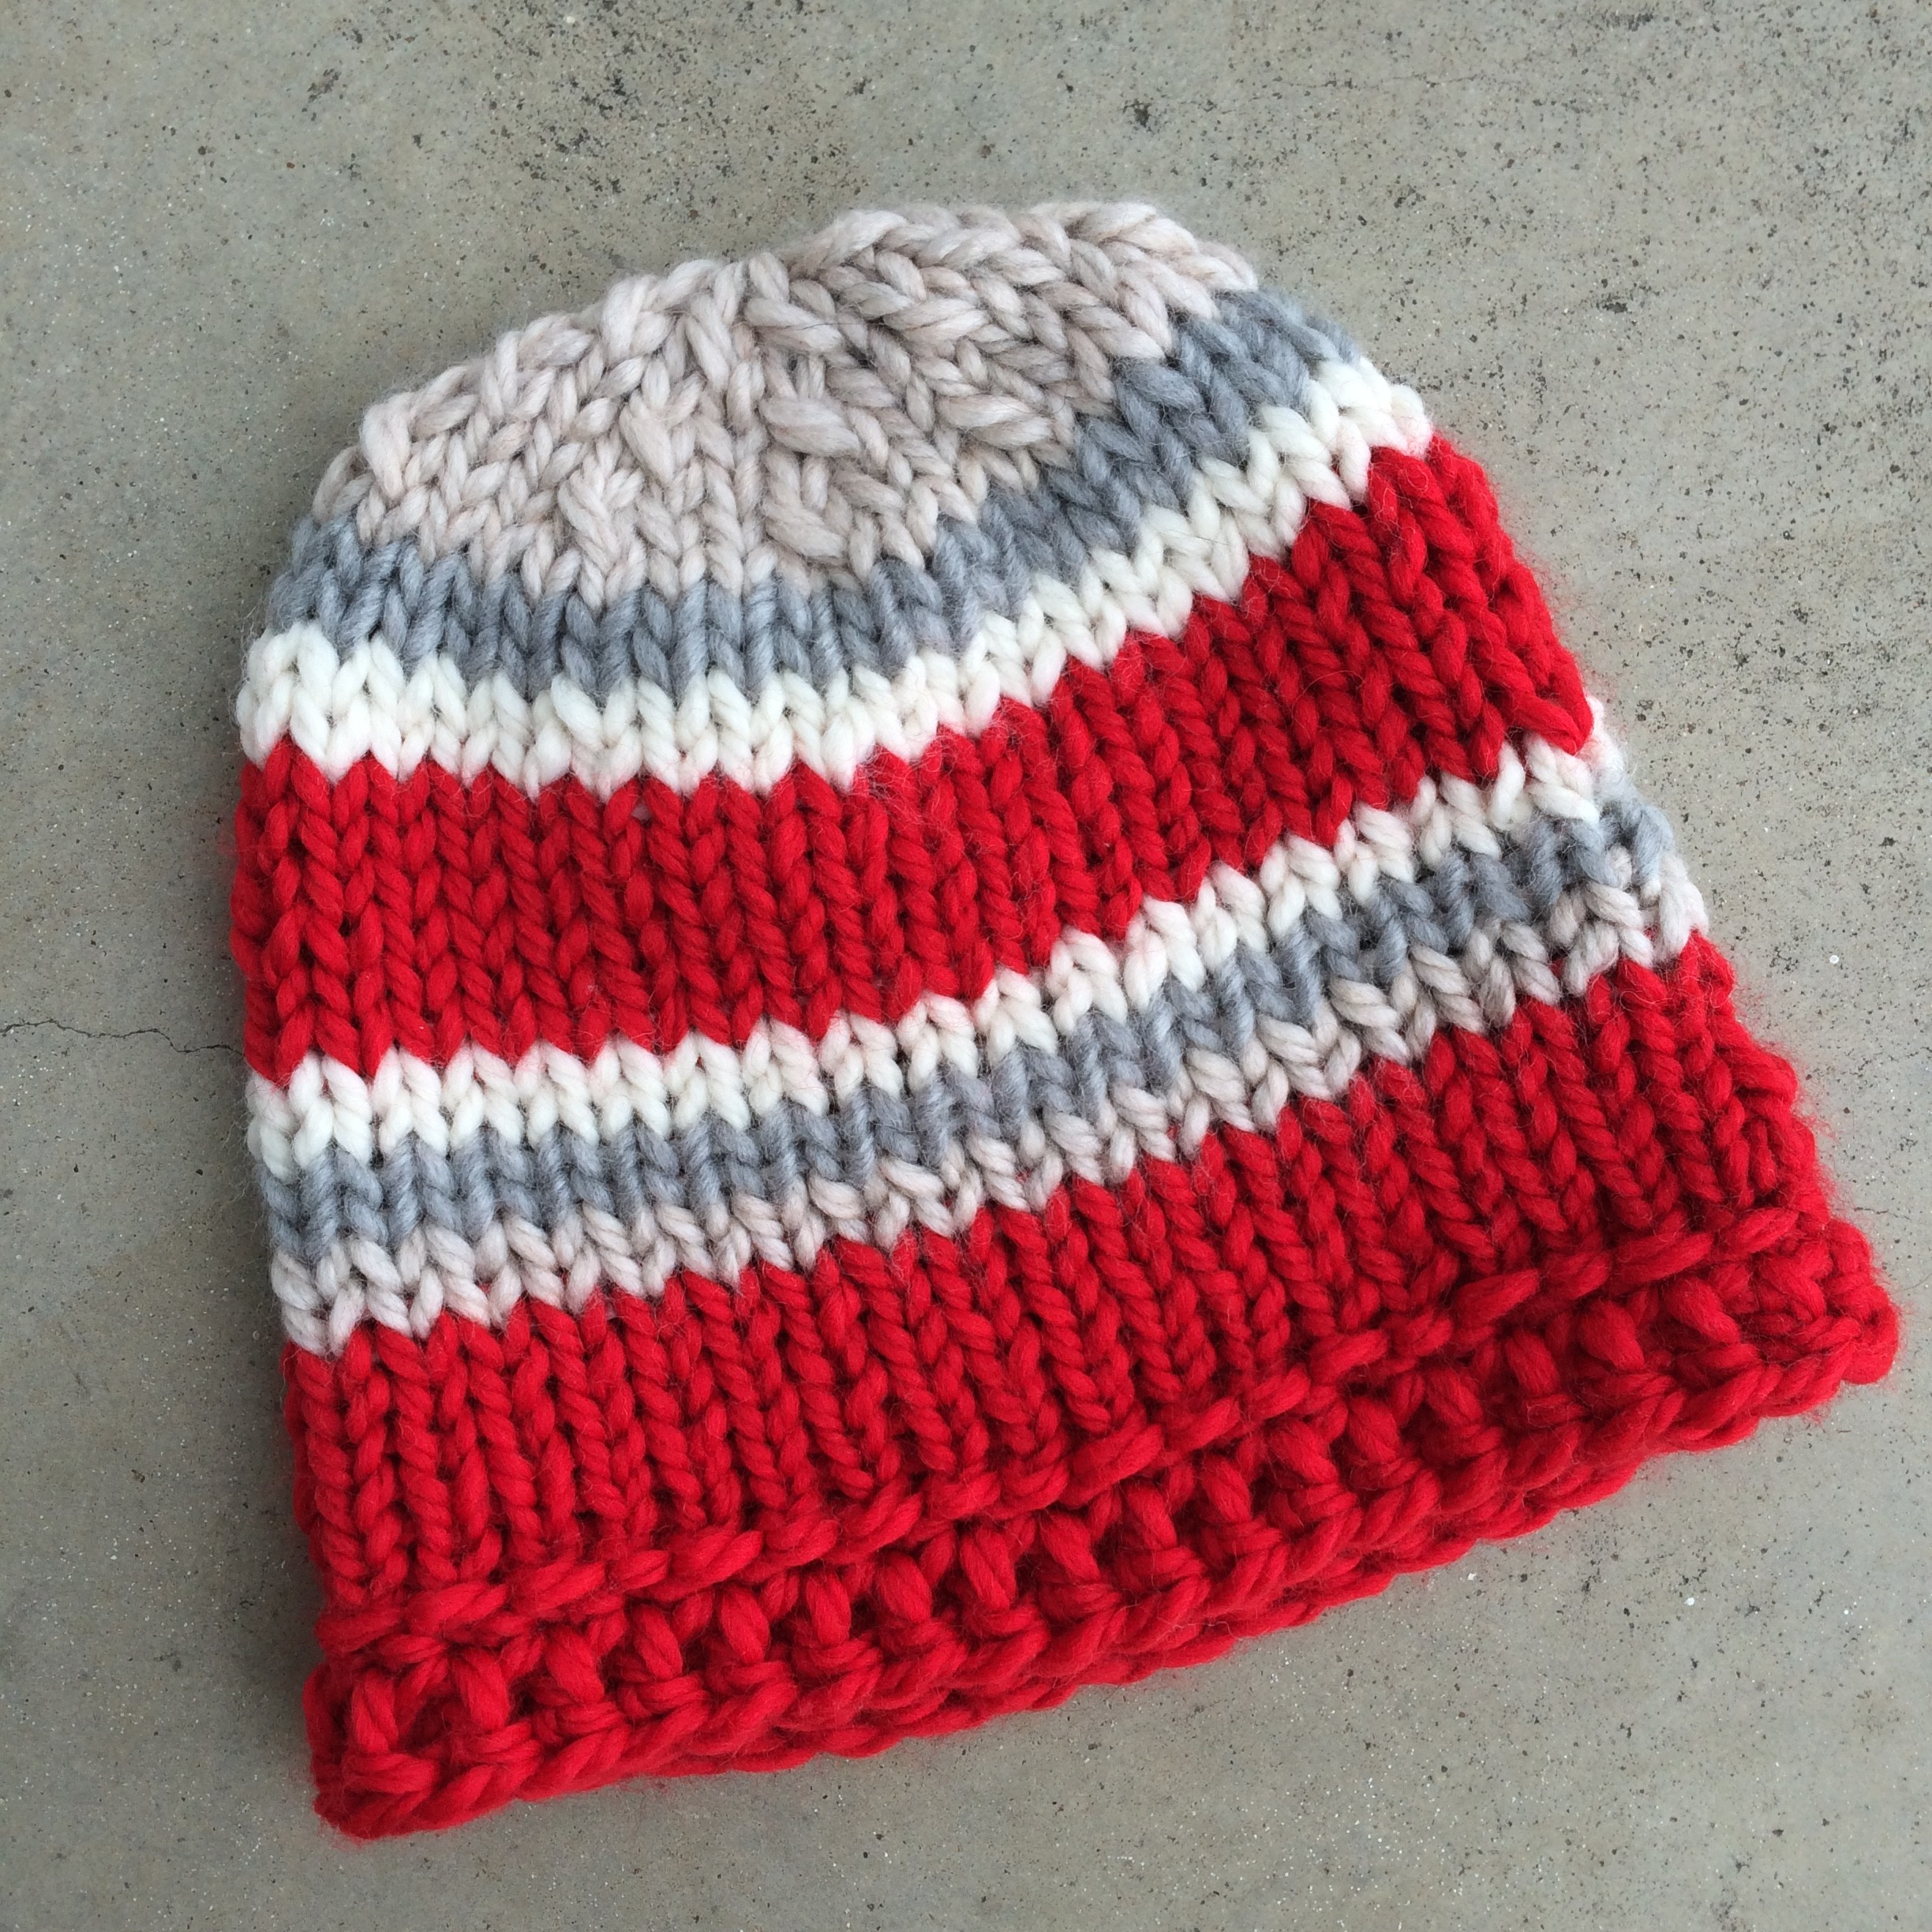 Easy Knit Hat Pattern For Beginners Simple Chunky Knit Hat Marni Made It